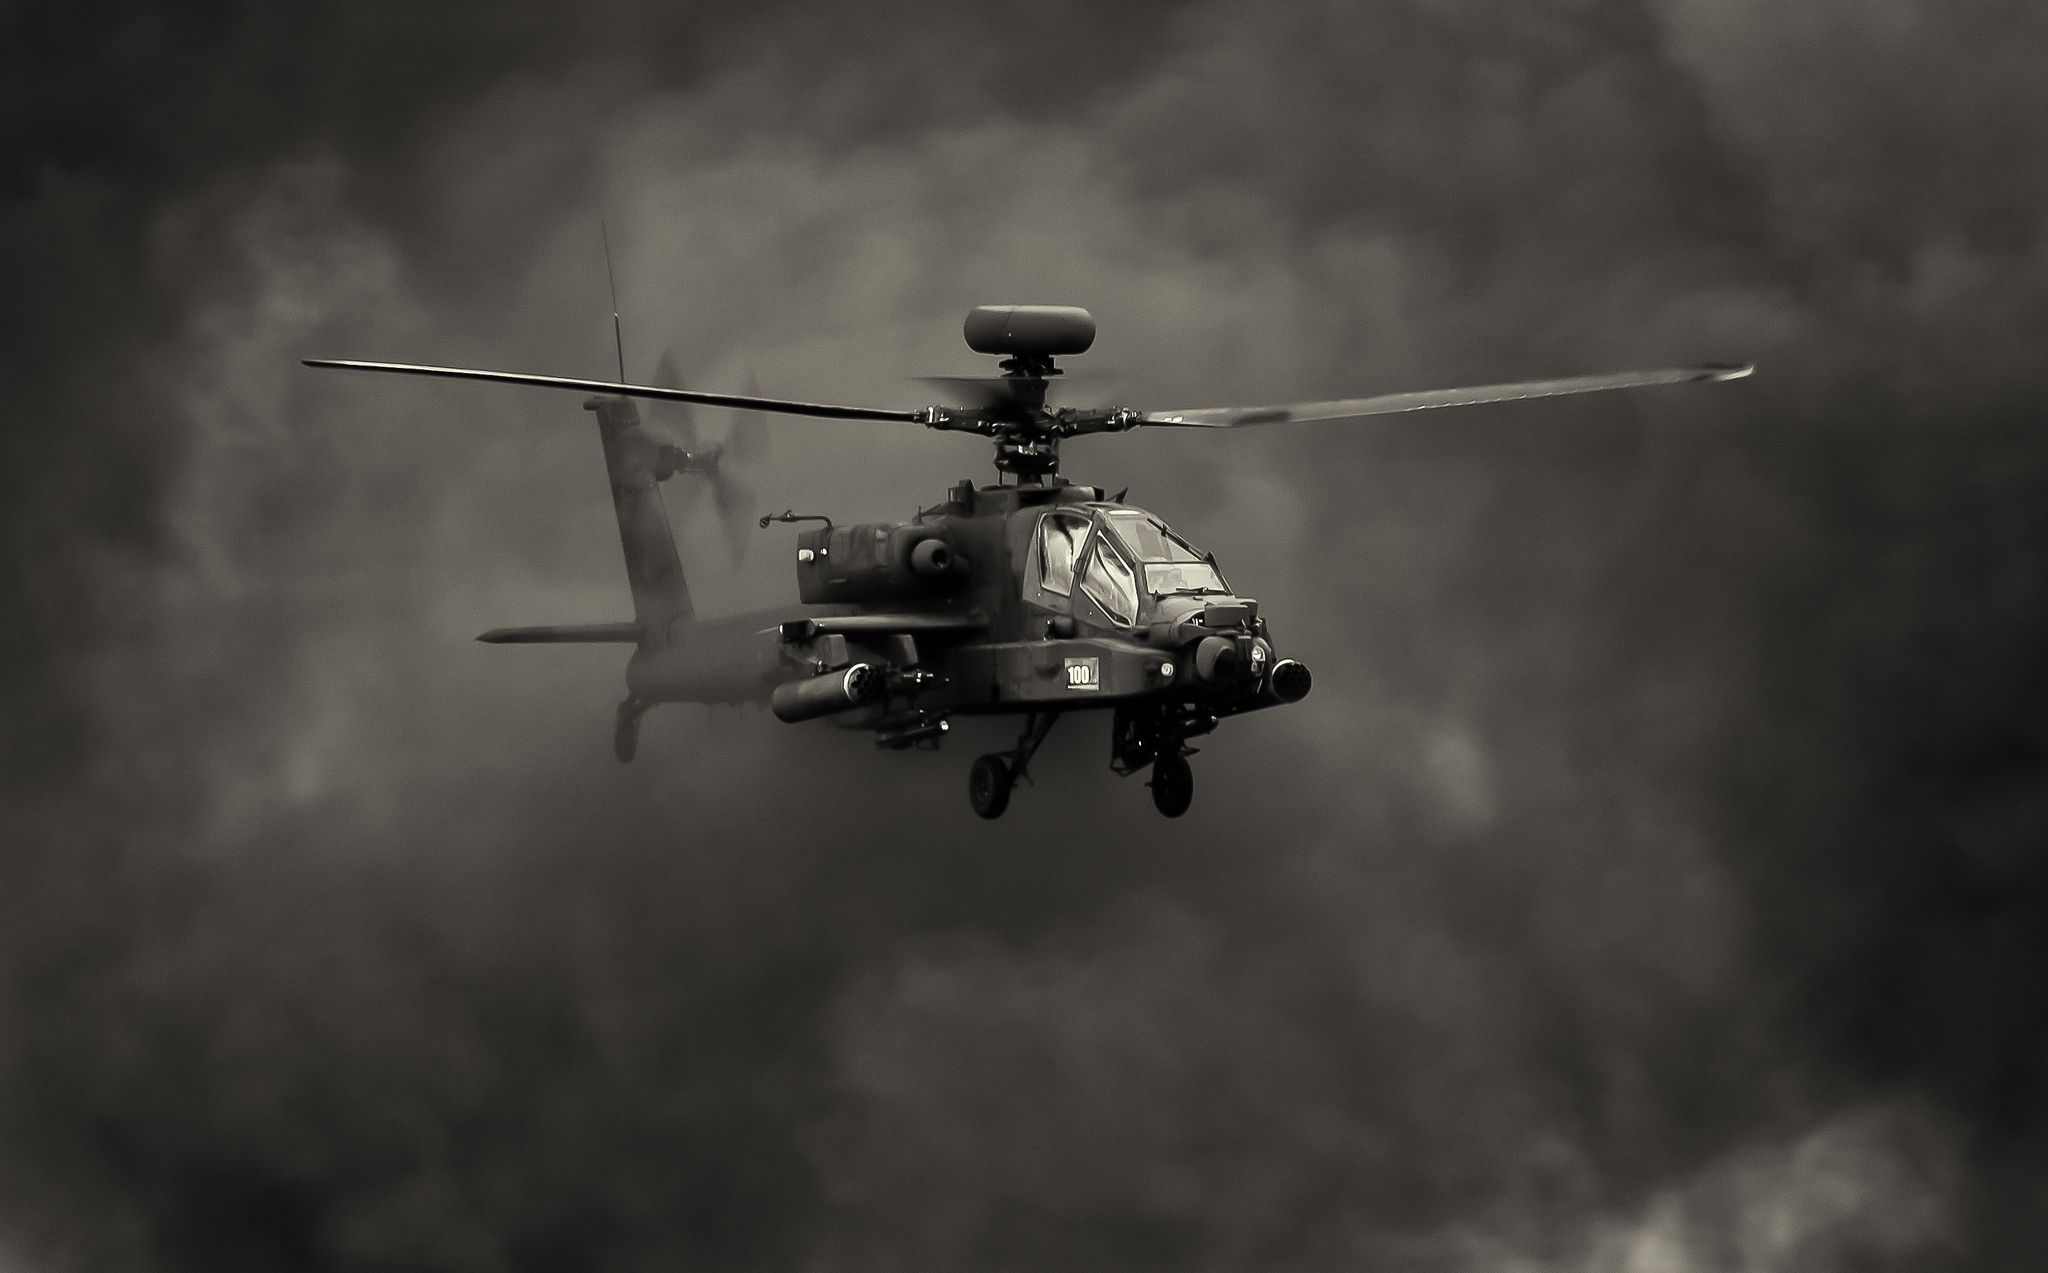 Helicopter Wallpapers Mobile For Desktop Wallpaper 2048 X 1273 Px 78338 KB Comanche Longbow Uh 60 Blackhawk In Action Bell Attack Rescue Eurocopter